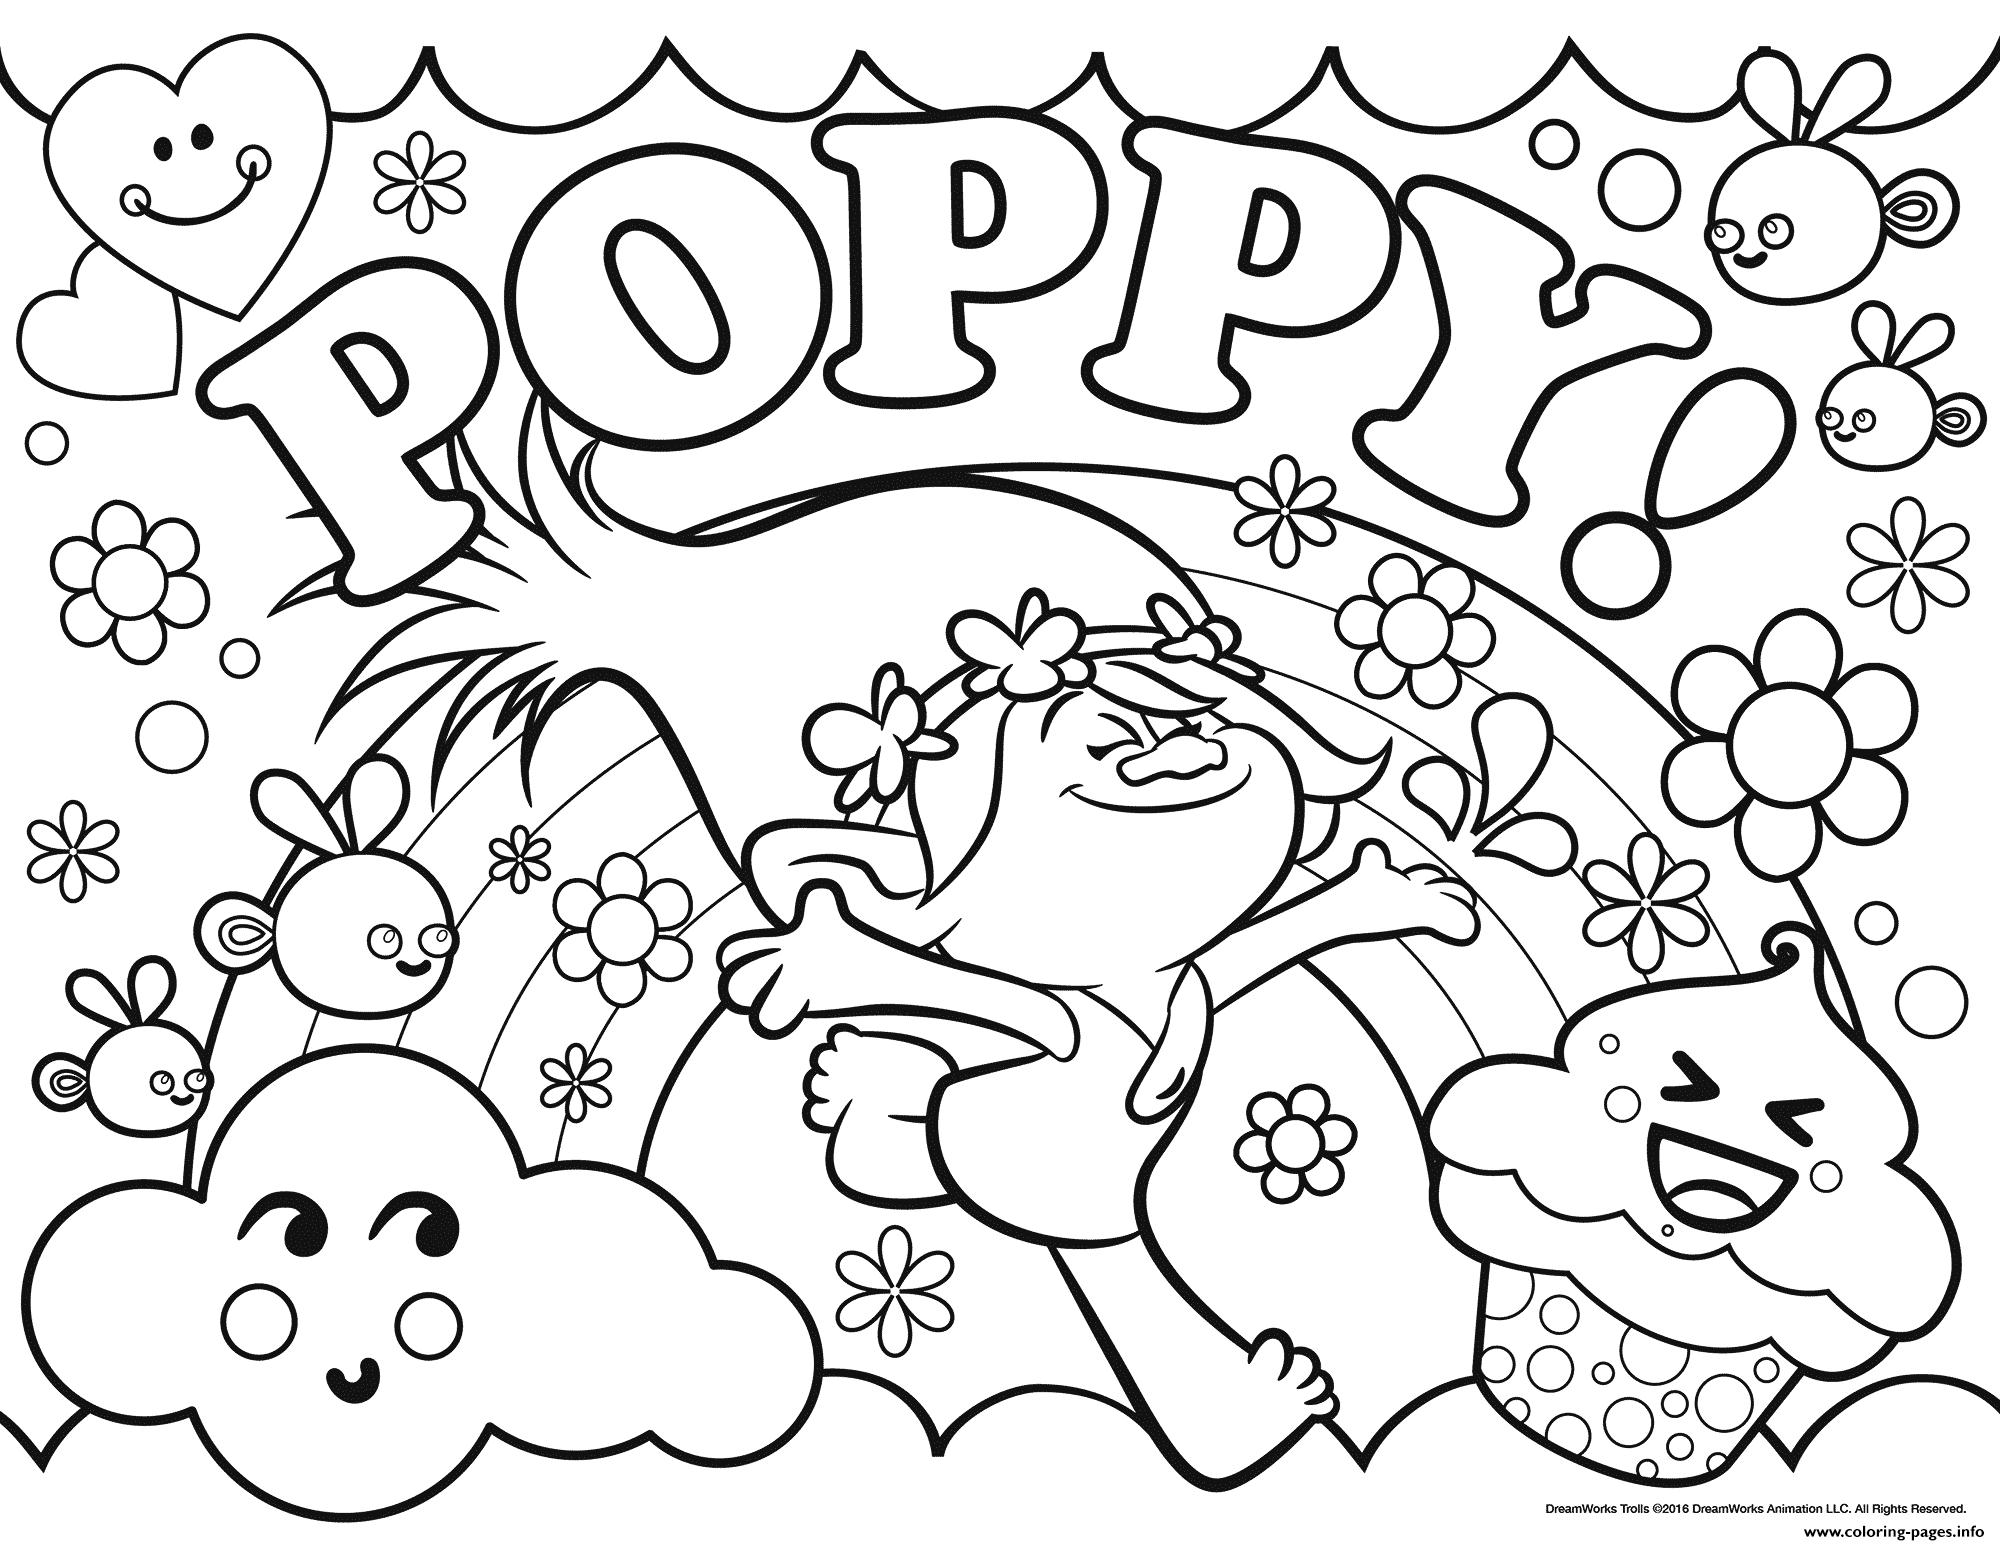 2000x1545 Trolls Poppy Coloring Pages Printable